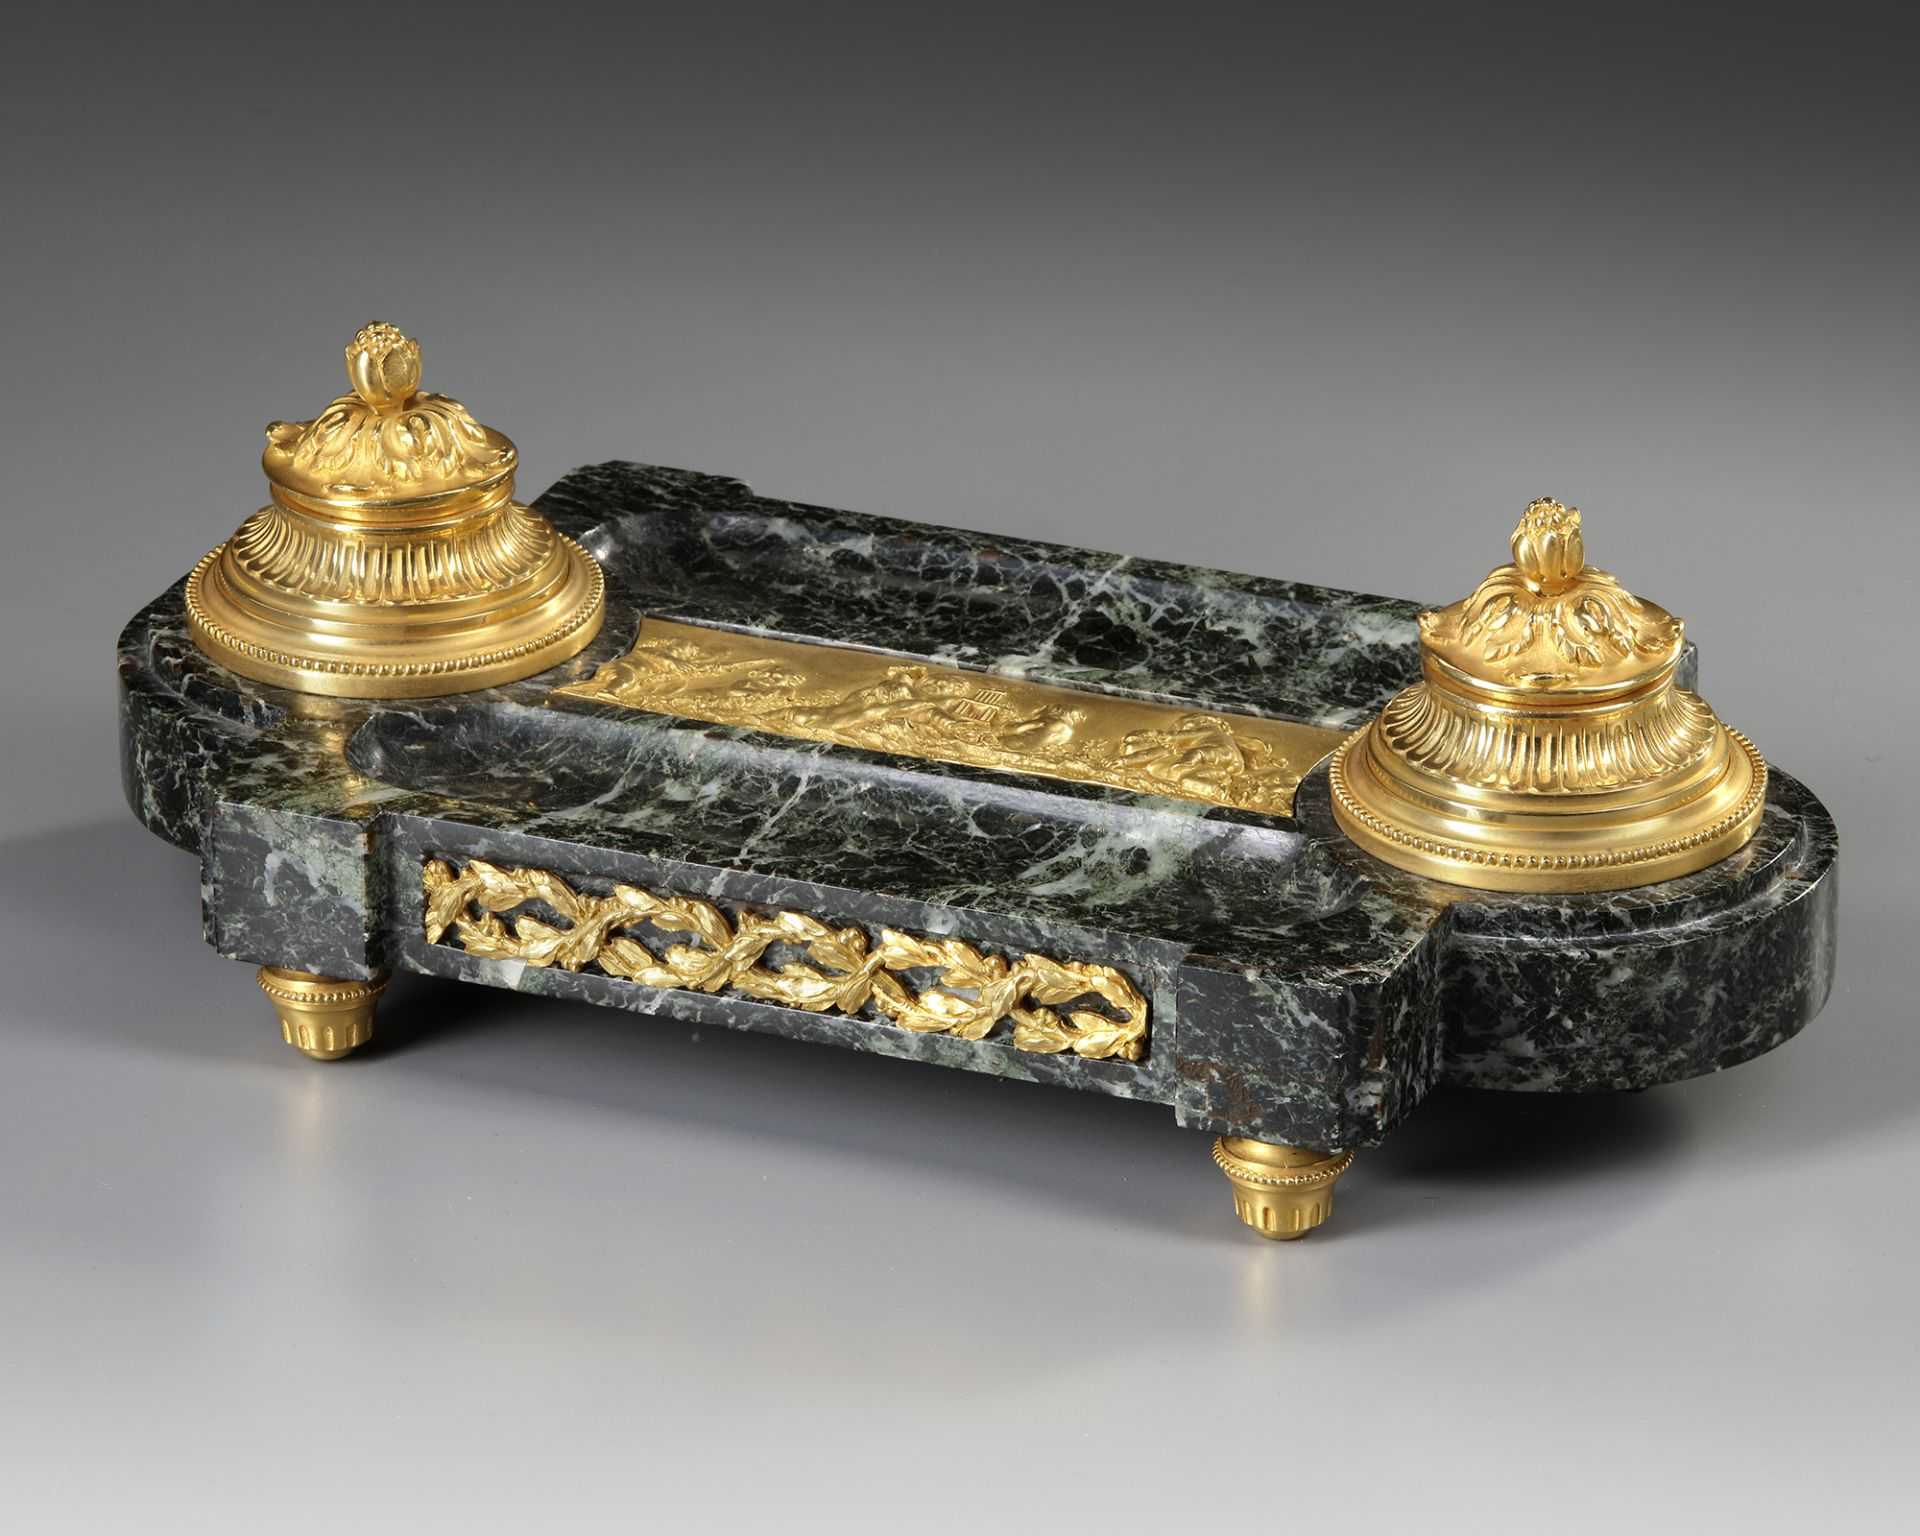 AN 'EMPIRE STYLE' INKWELL IN GILT BRONZE, 19TH CENTURY - Image 3 of 3